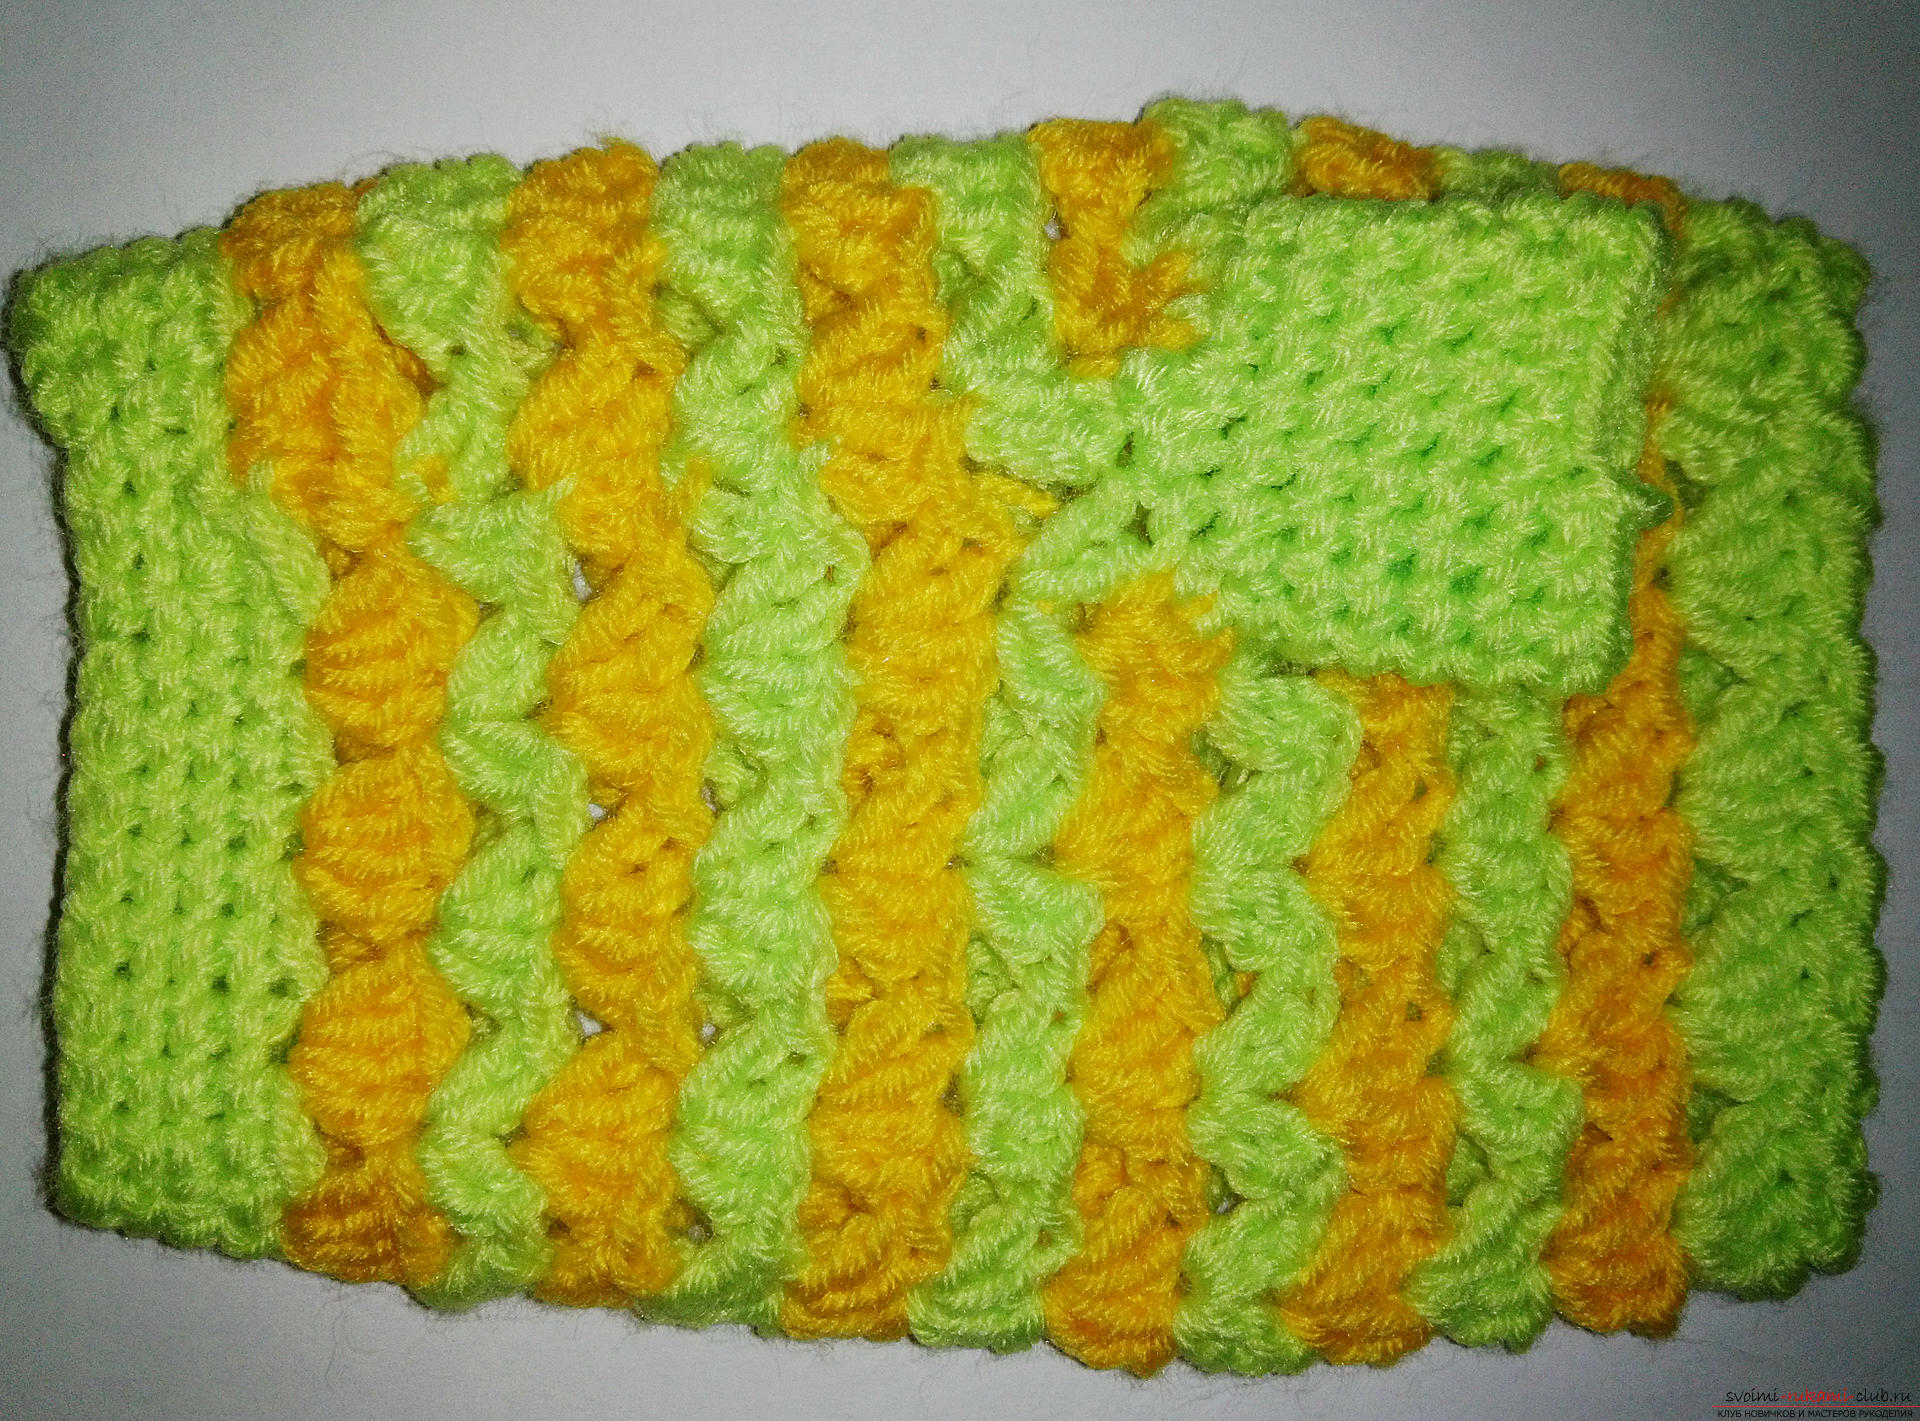 A master class with a photo and a description of the process will teach how to tie fishnet mitts crochet. Photo Number 14